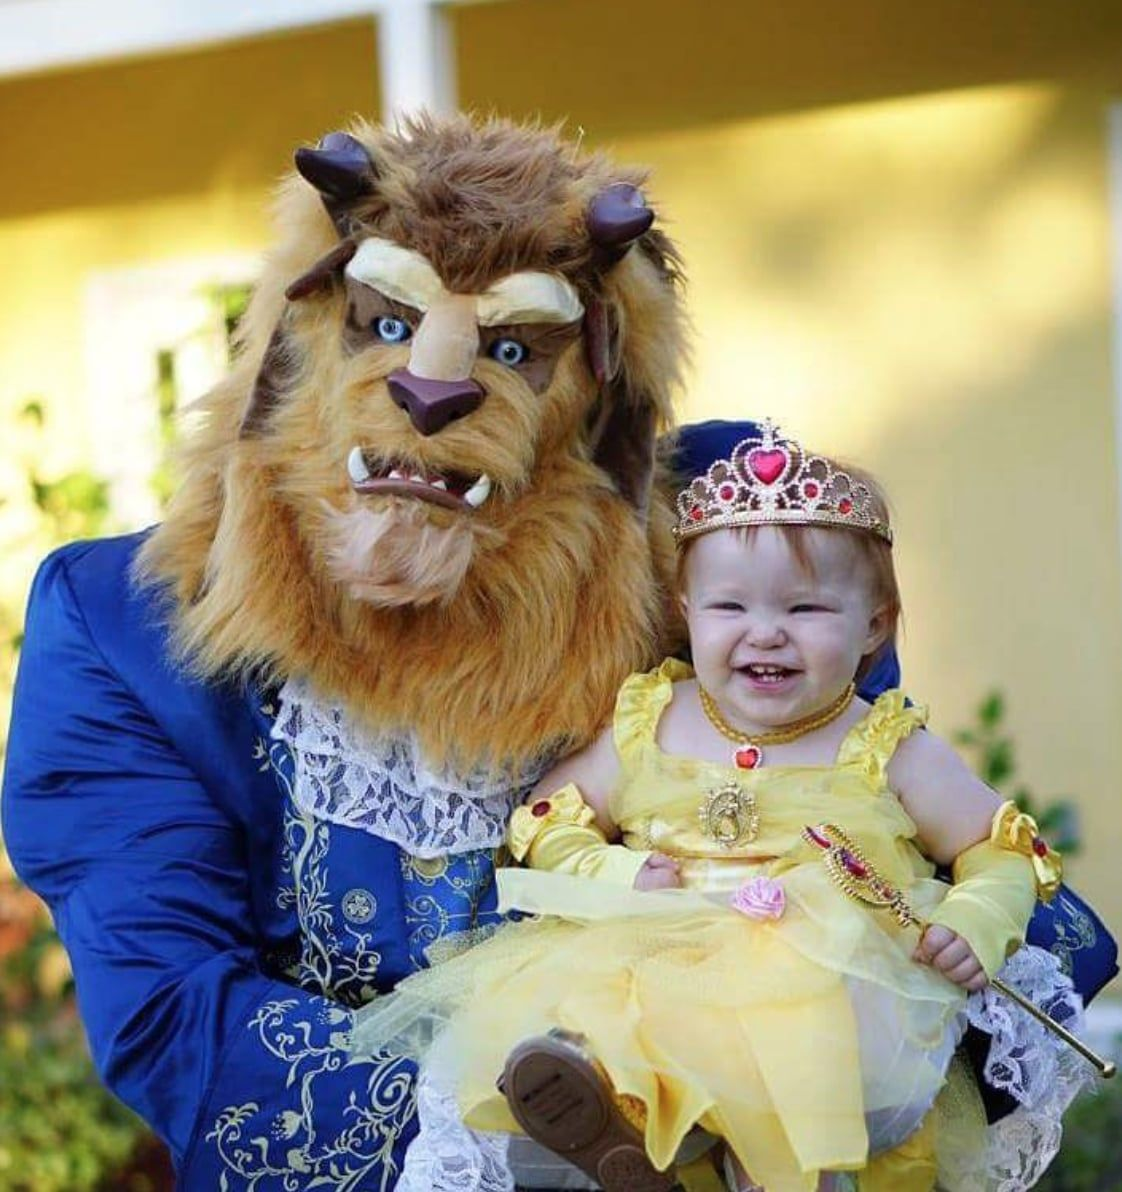 Belle And The Beast With Images Baby Girl Halloween Costumes